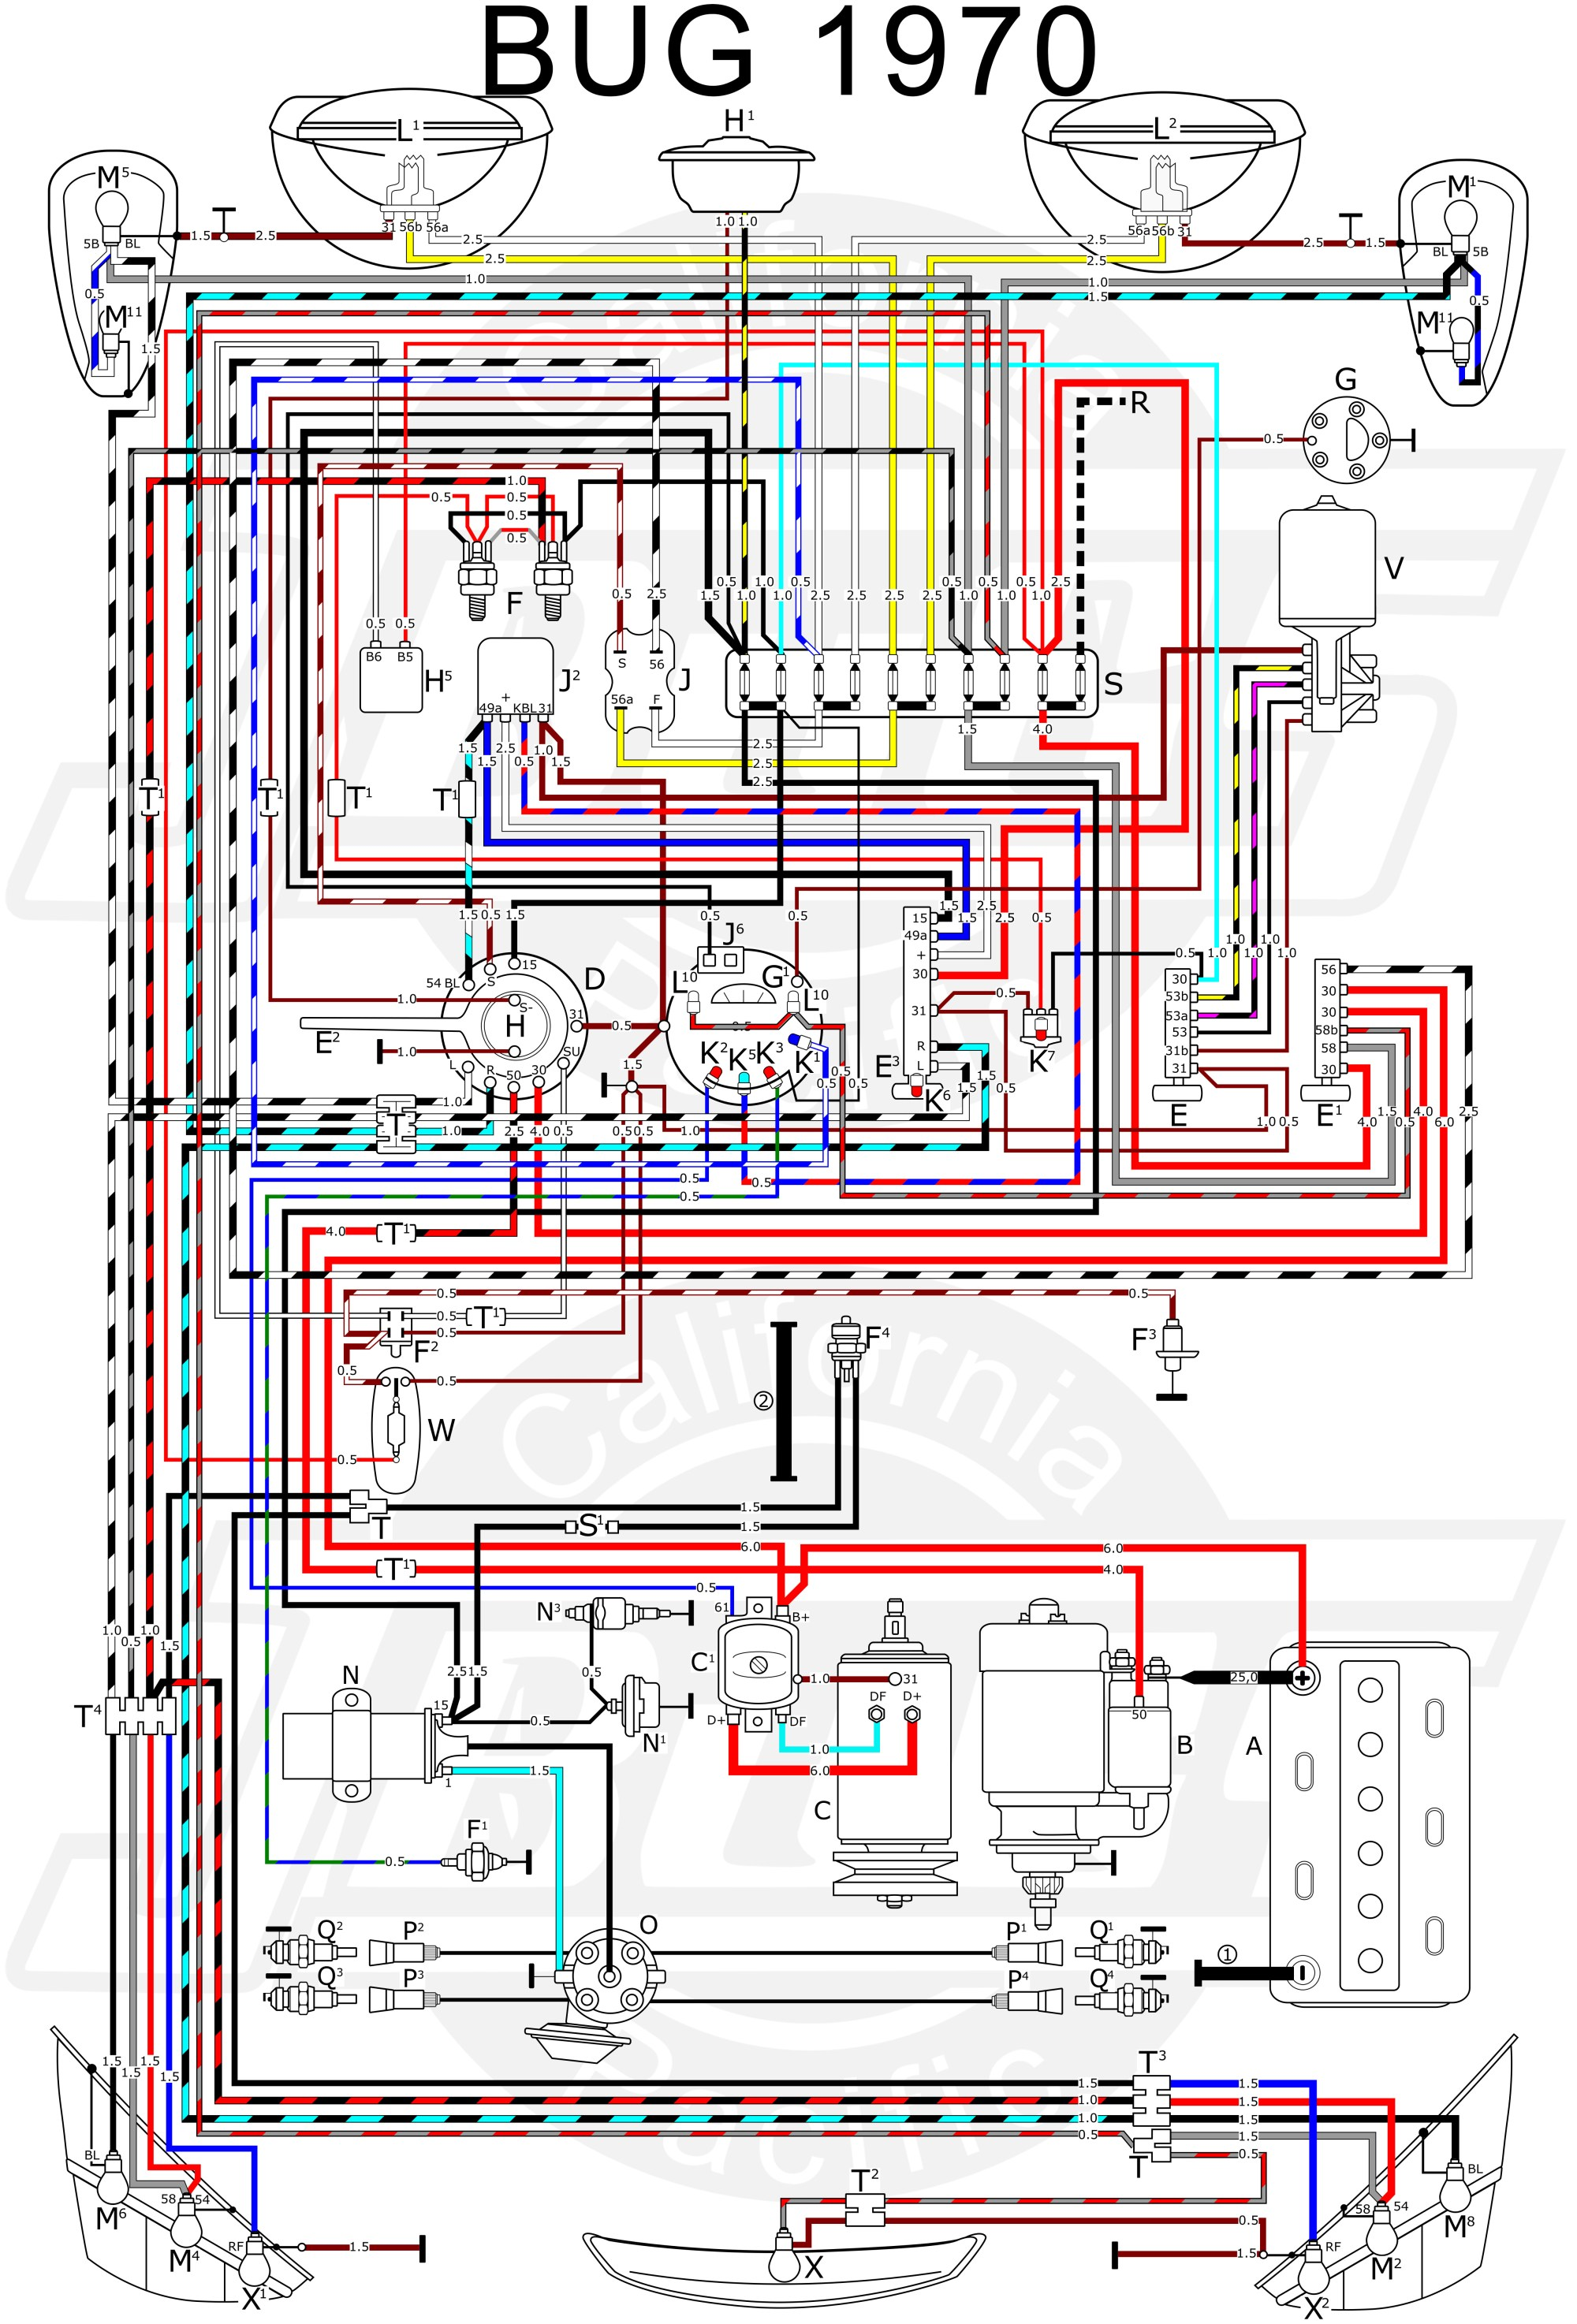 hight resolution of 1980 mgb wiring schematic wiring library 1976 mgb wiring diagram 1980